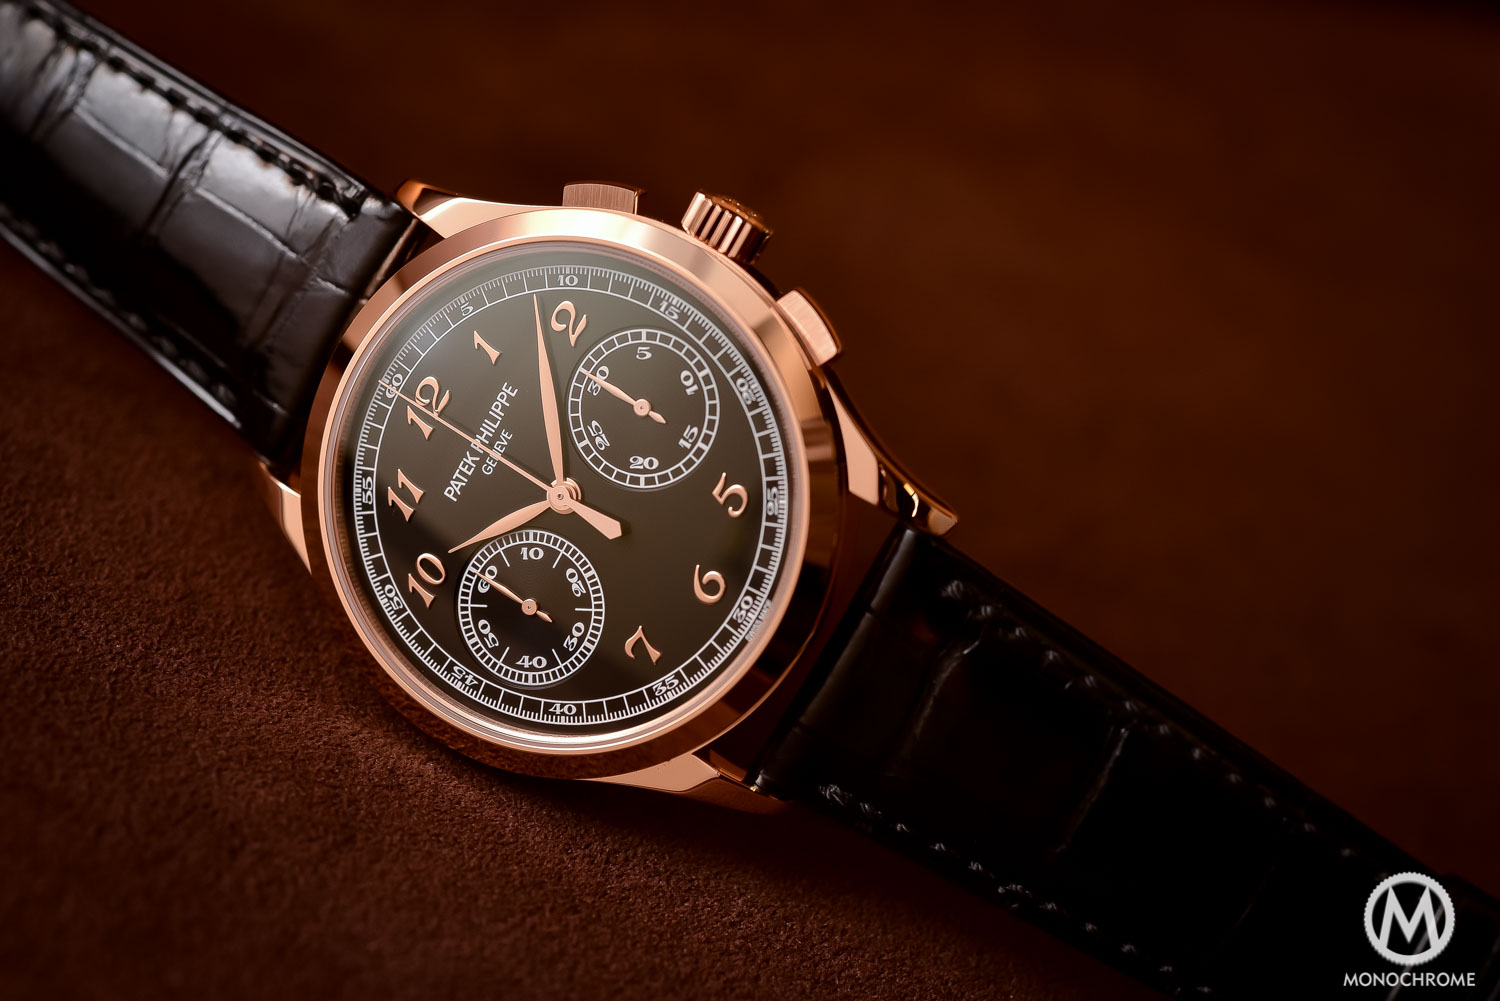 Hands-on Review of the 2016 Patek Philippe 5170R Chronograph 8d38a9c241